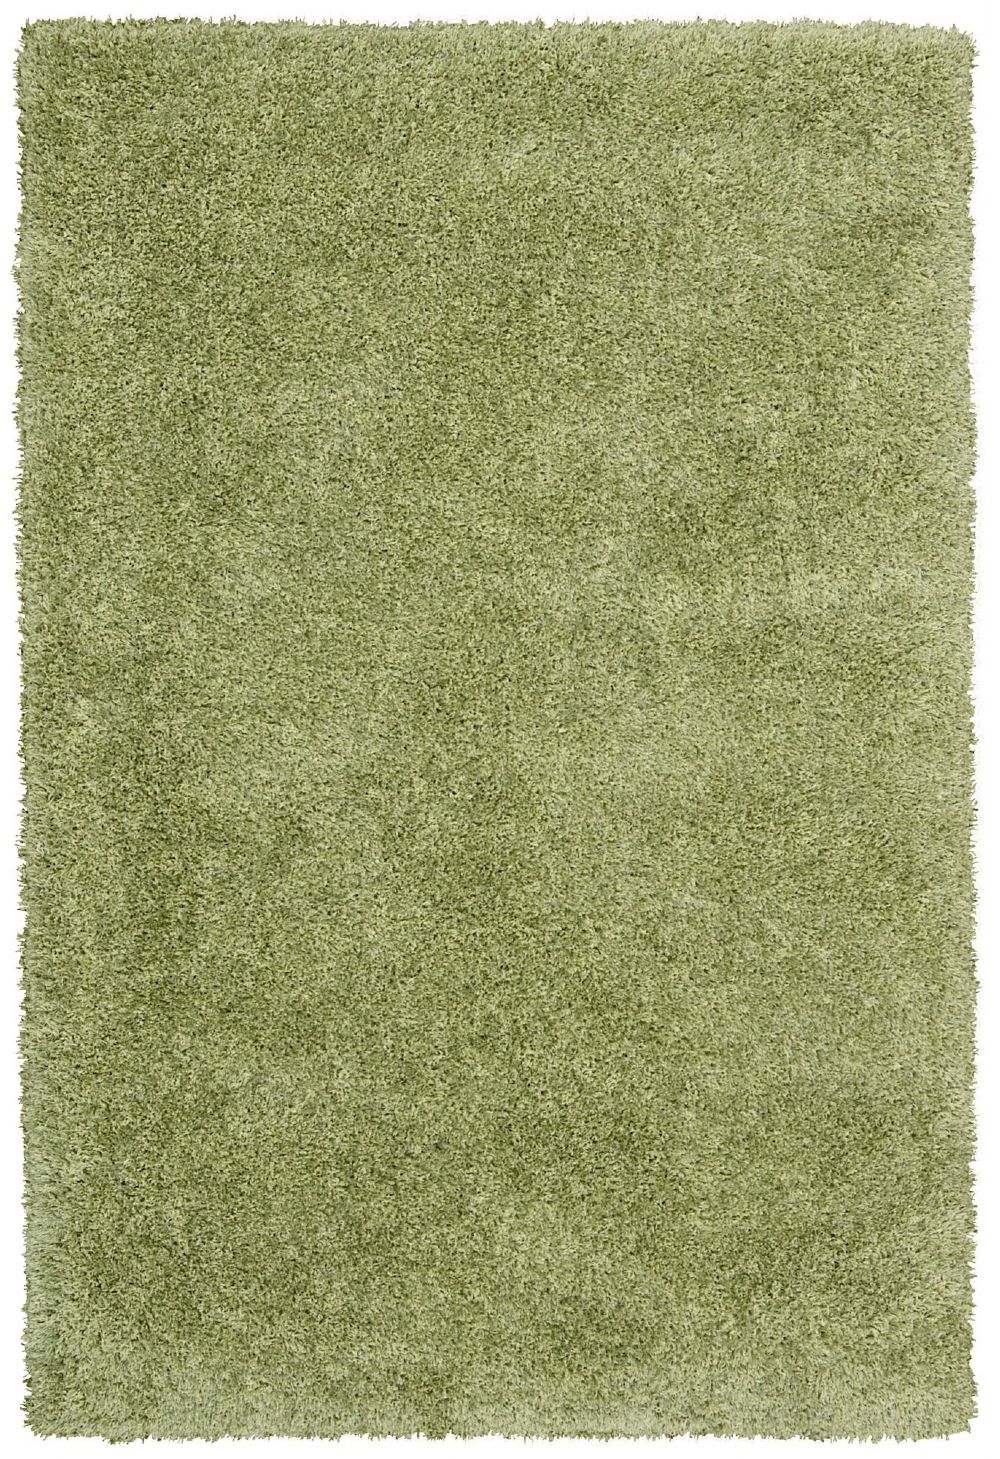 nourison escape solid/striped area rug collection